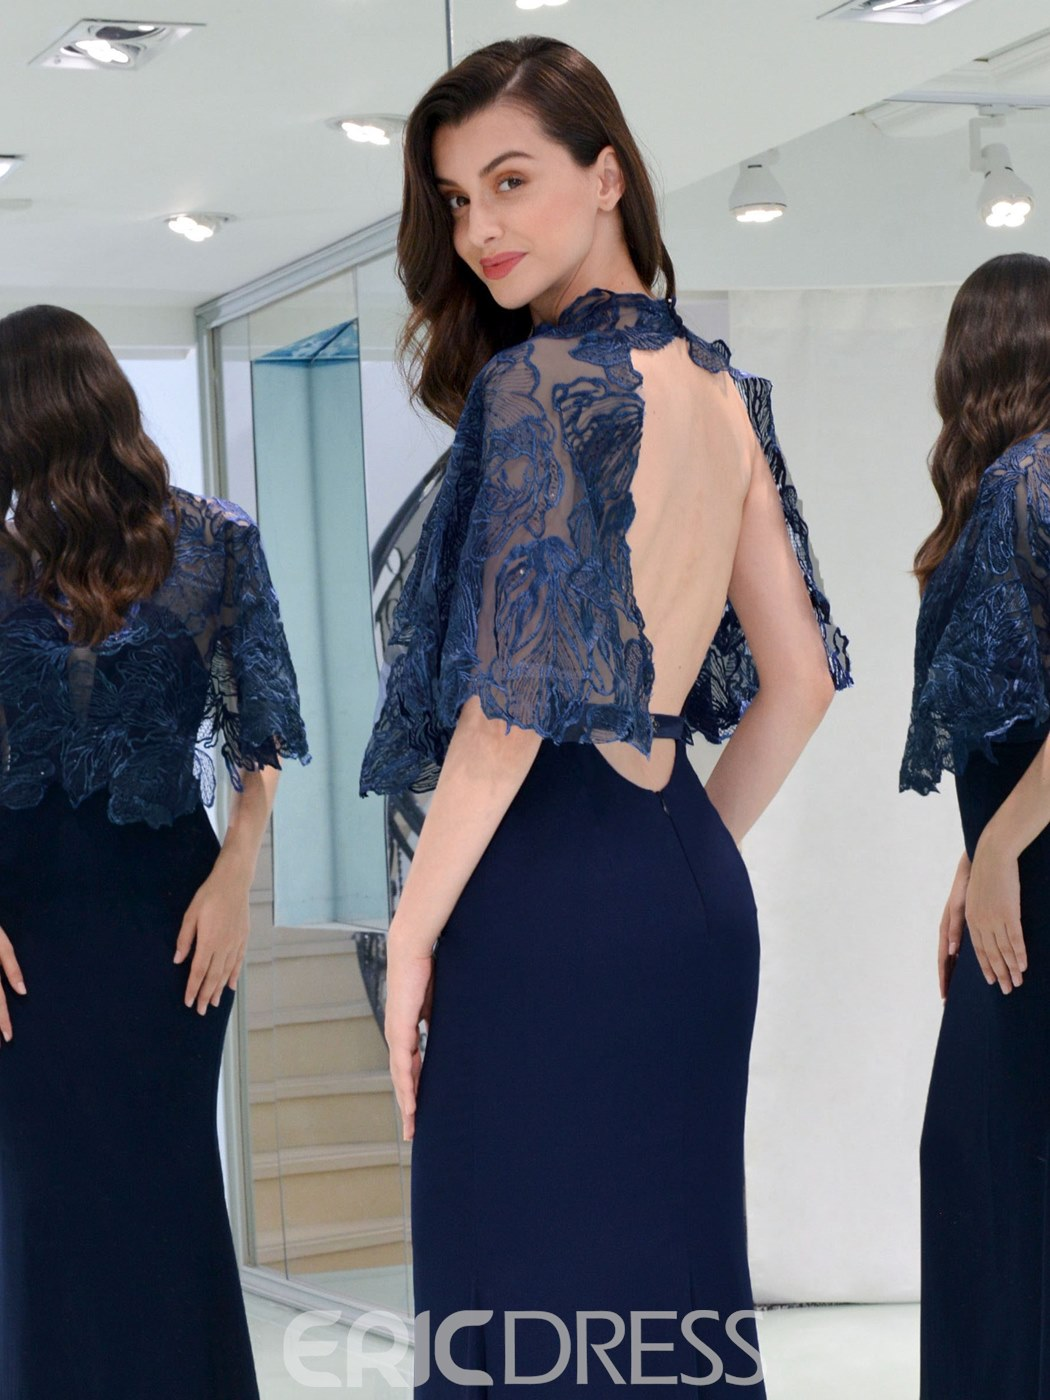 Ericdress Backless Mermaid Evening Dress With Lace Cape